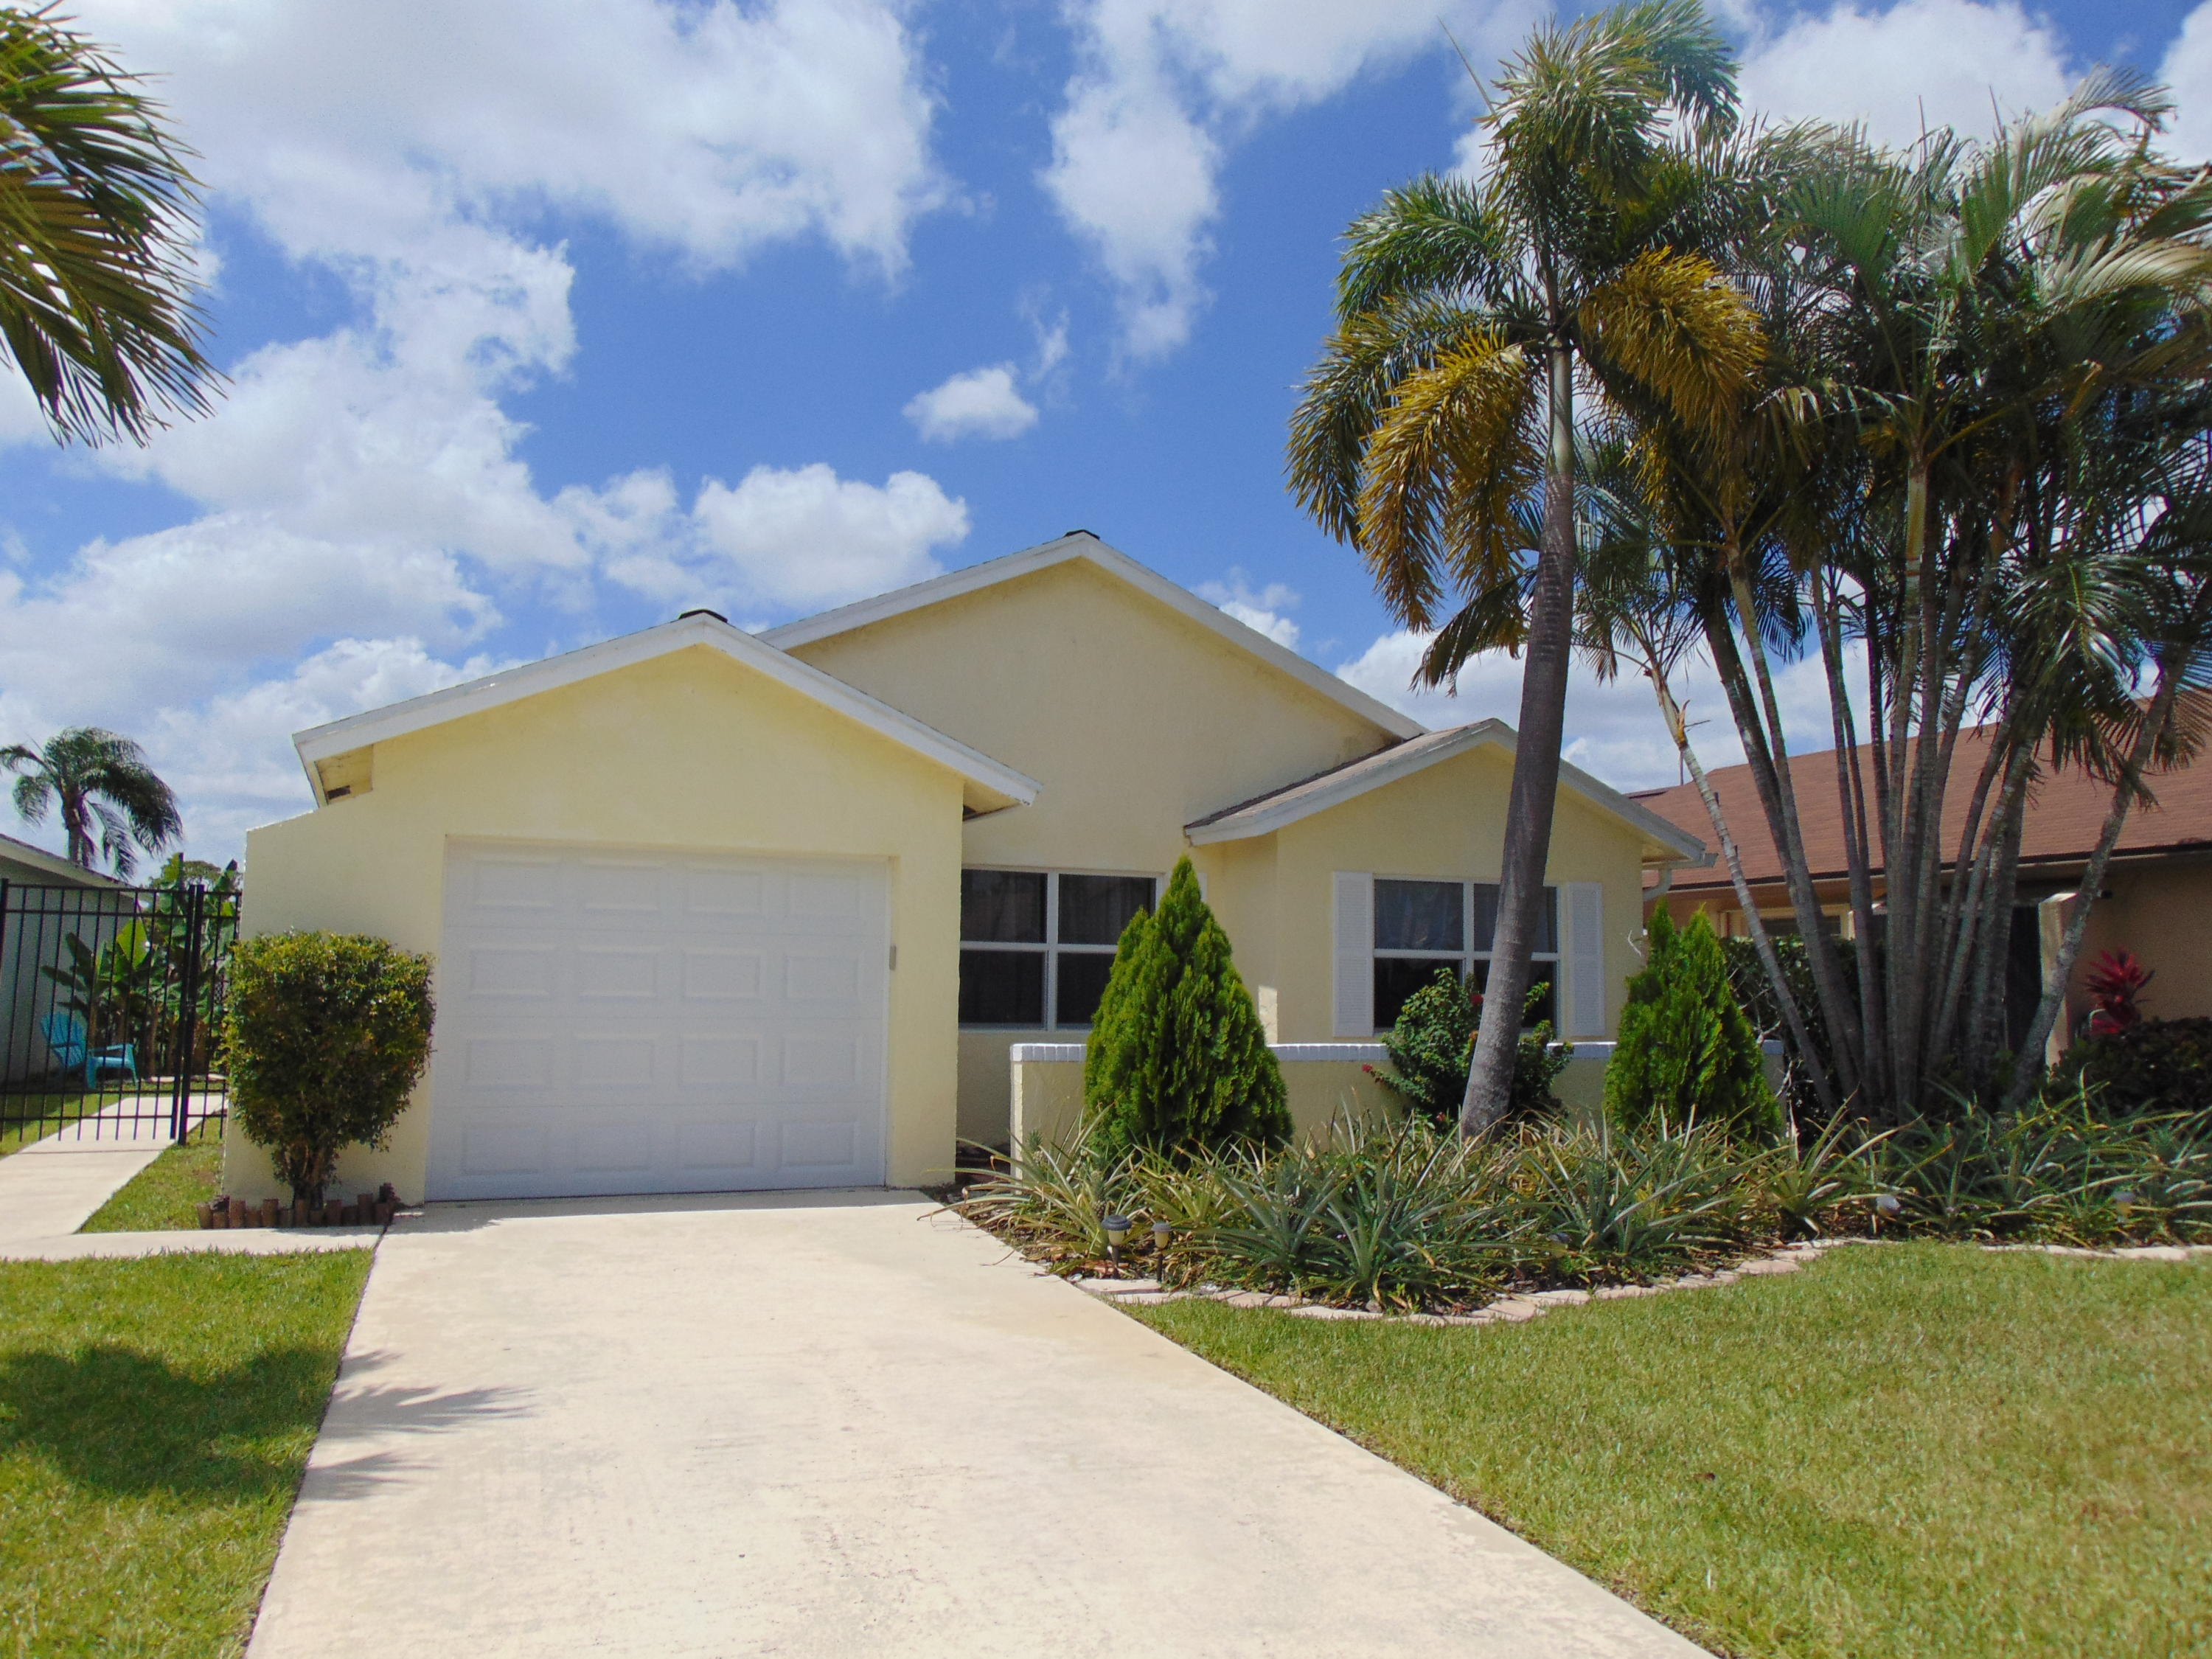 9048  Pine Springs Drive  For Sale 10721459, FL